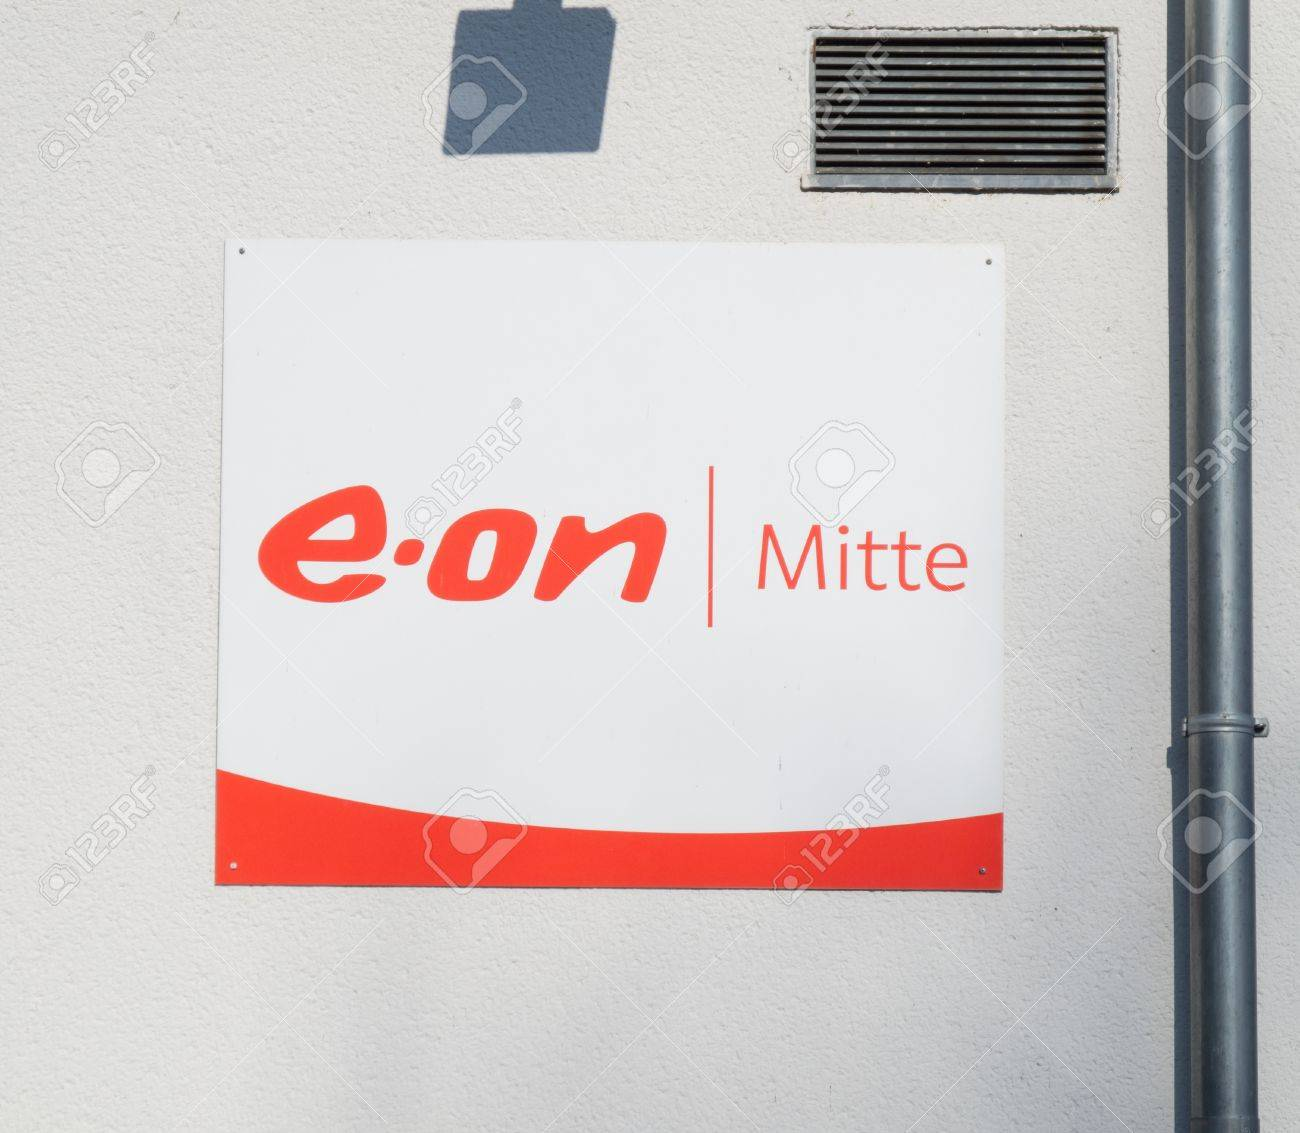 E.ON Mitte (located in Kassel) is a regional (Hesse) power utility and part of E.ON AG, the world's largest investor-owned electric utility service provider based in Duesseldorf, North Rhine-Westphalia, Germany. Stock Photo - 15054544